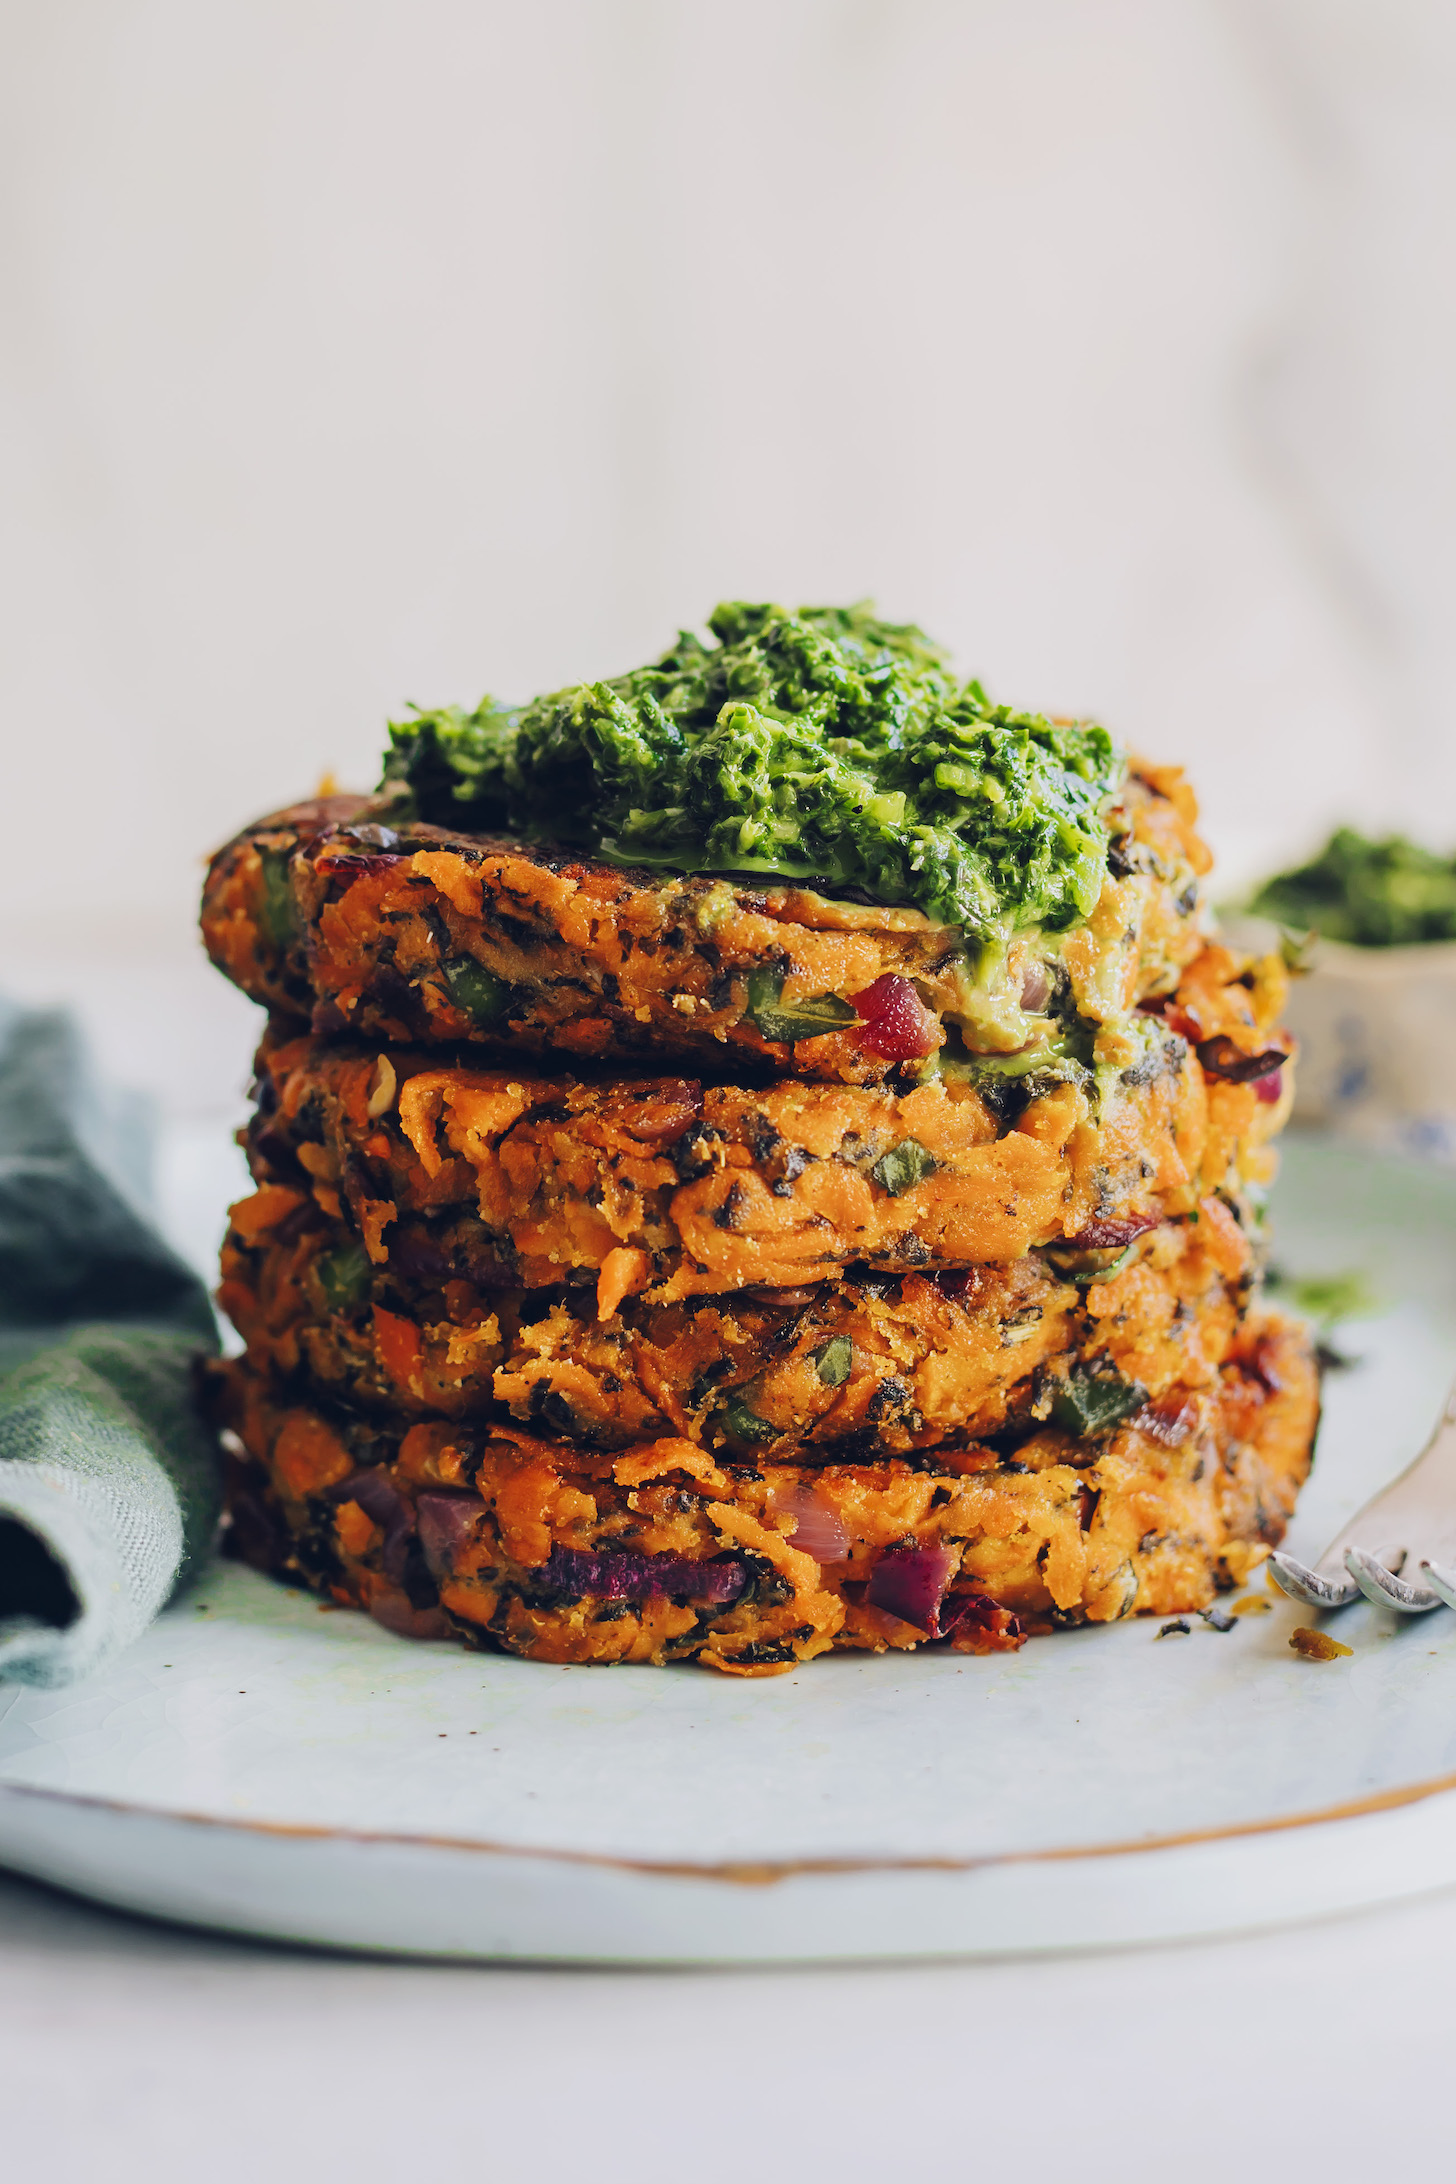 Stack of sweet potato fritters topped with mint chutney